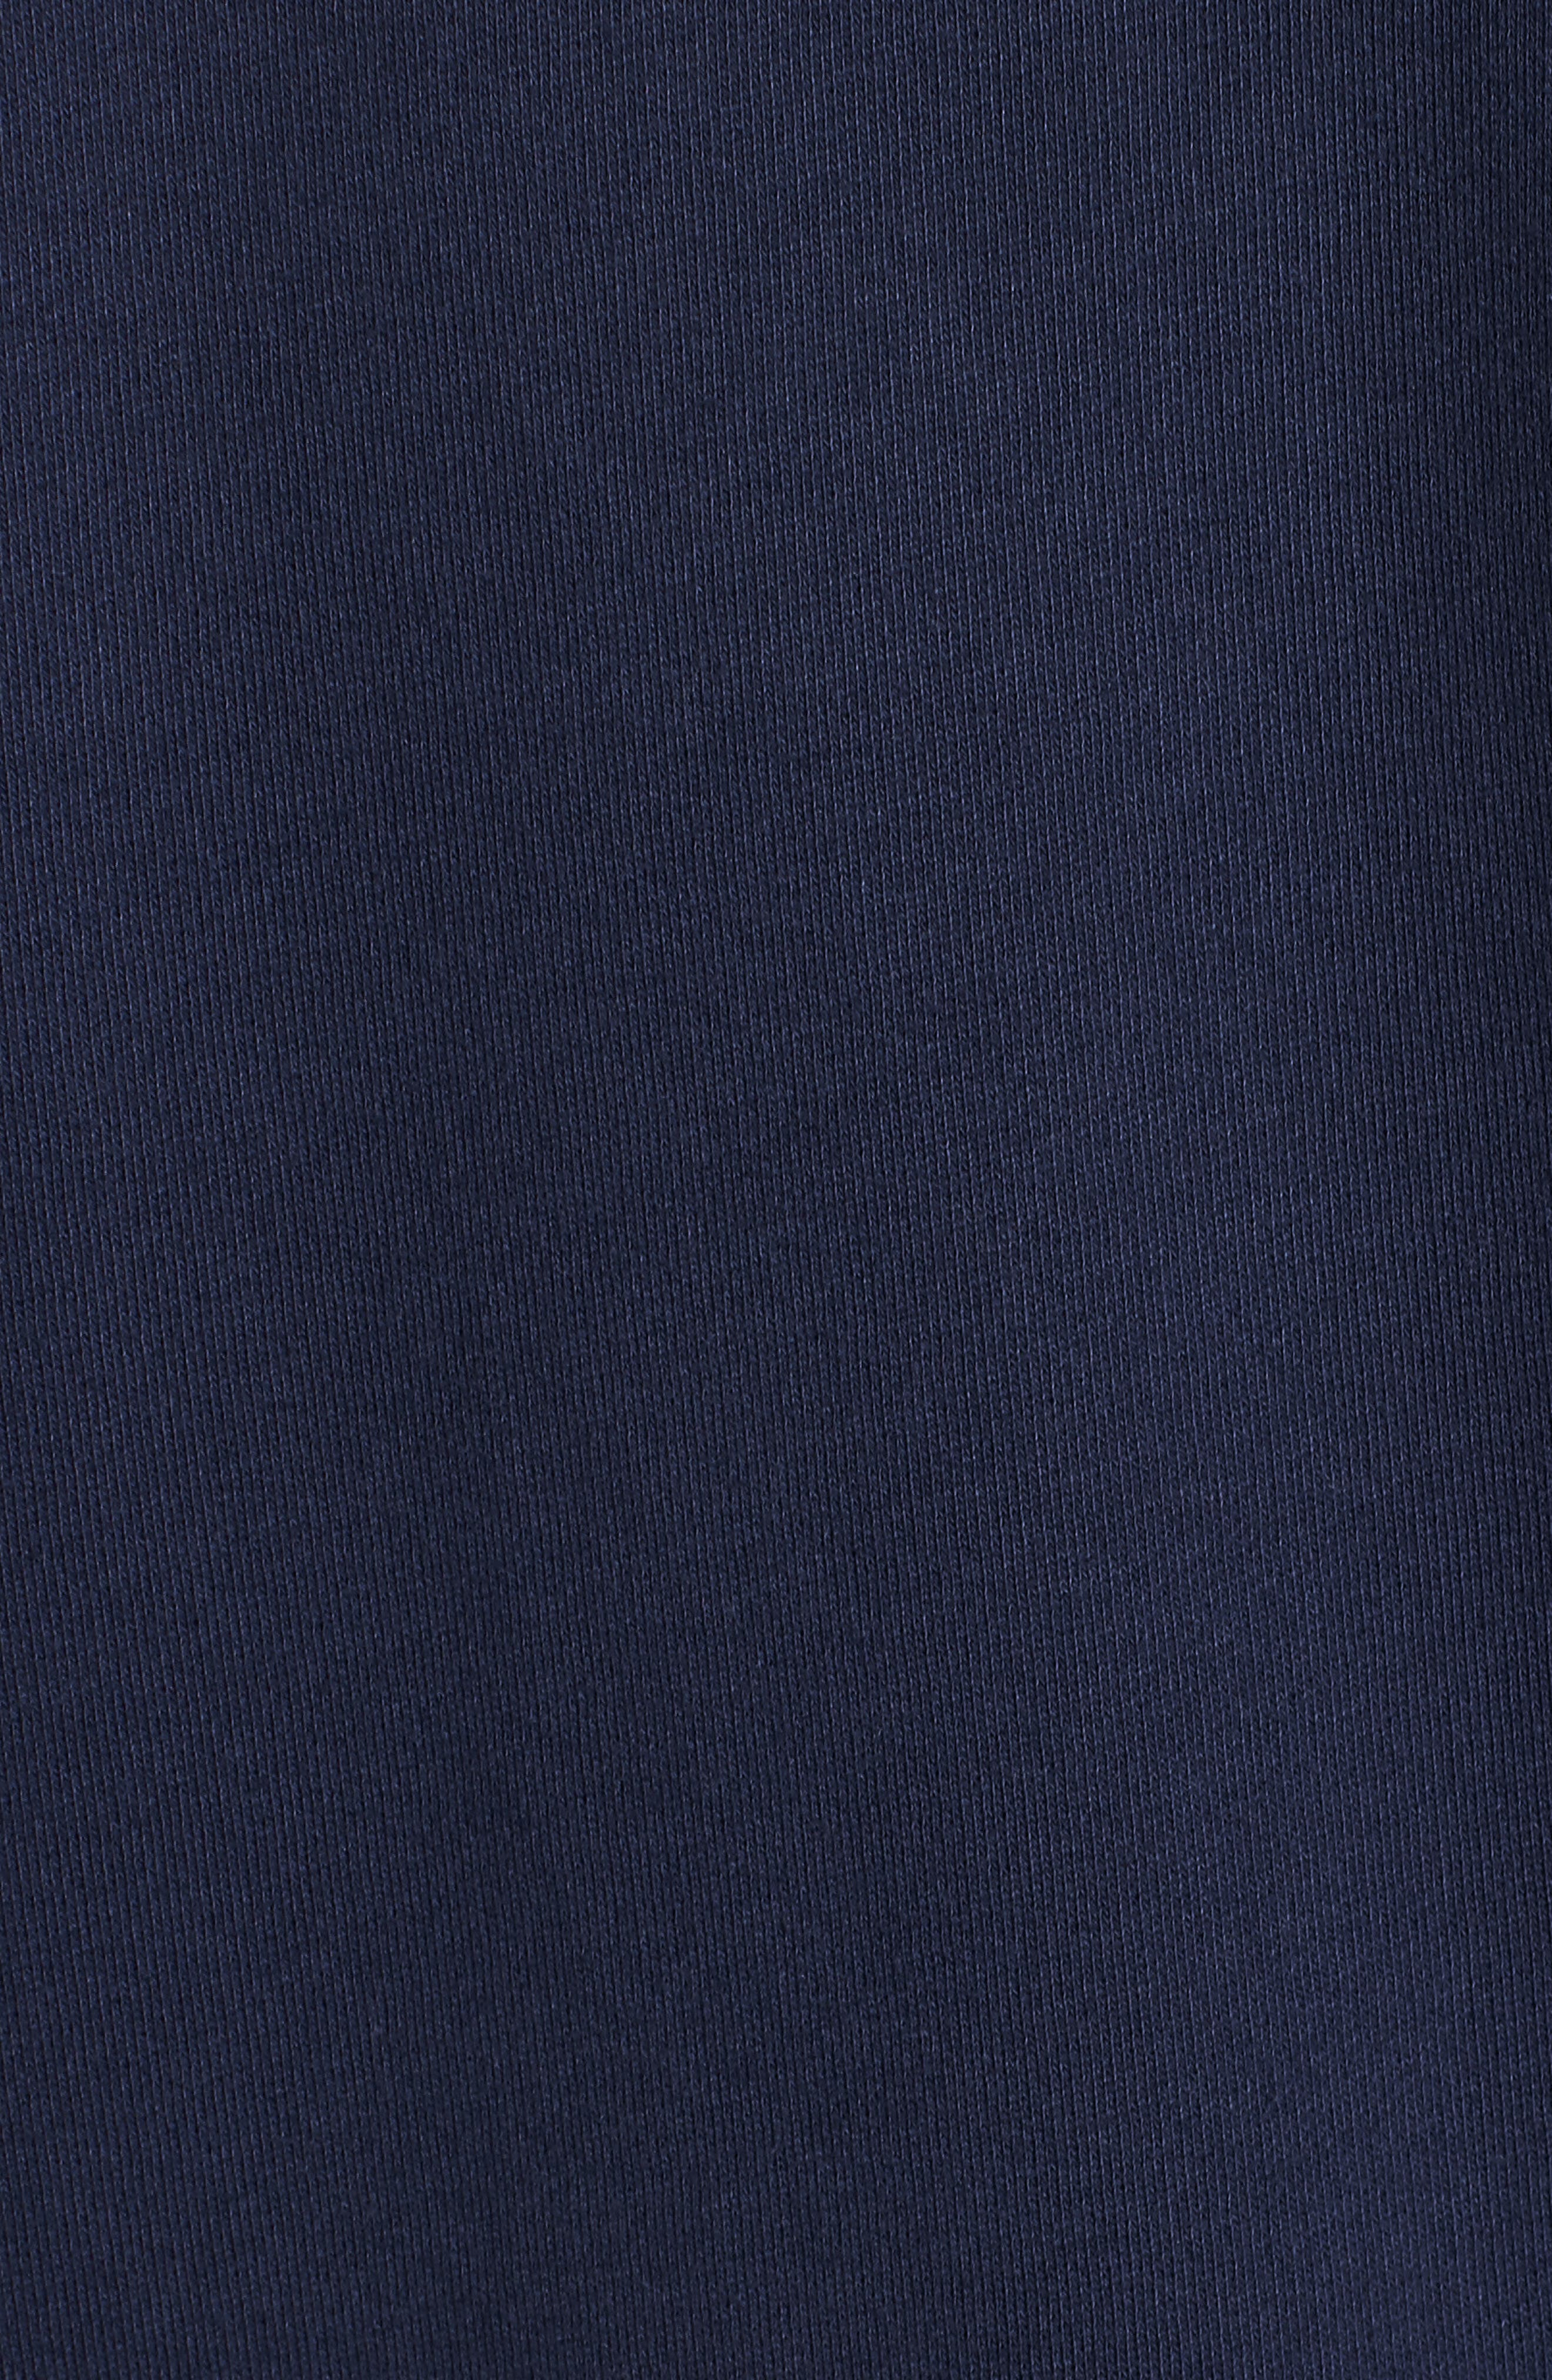 VINEYARD VINES, Collegiate Half Zip Pullover, Alternate thumbnail 5, color, VINEYARD NAVY